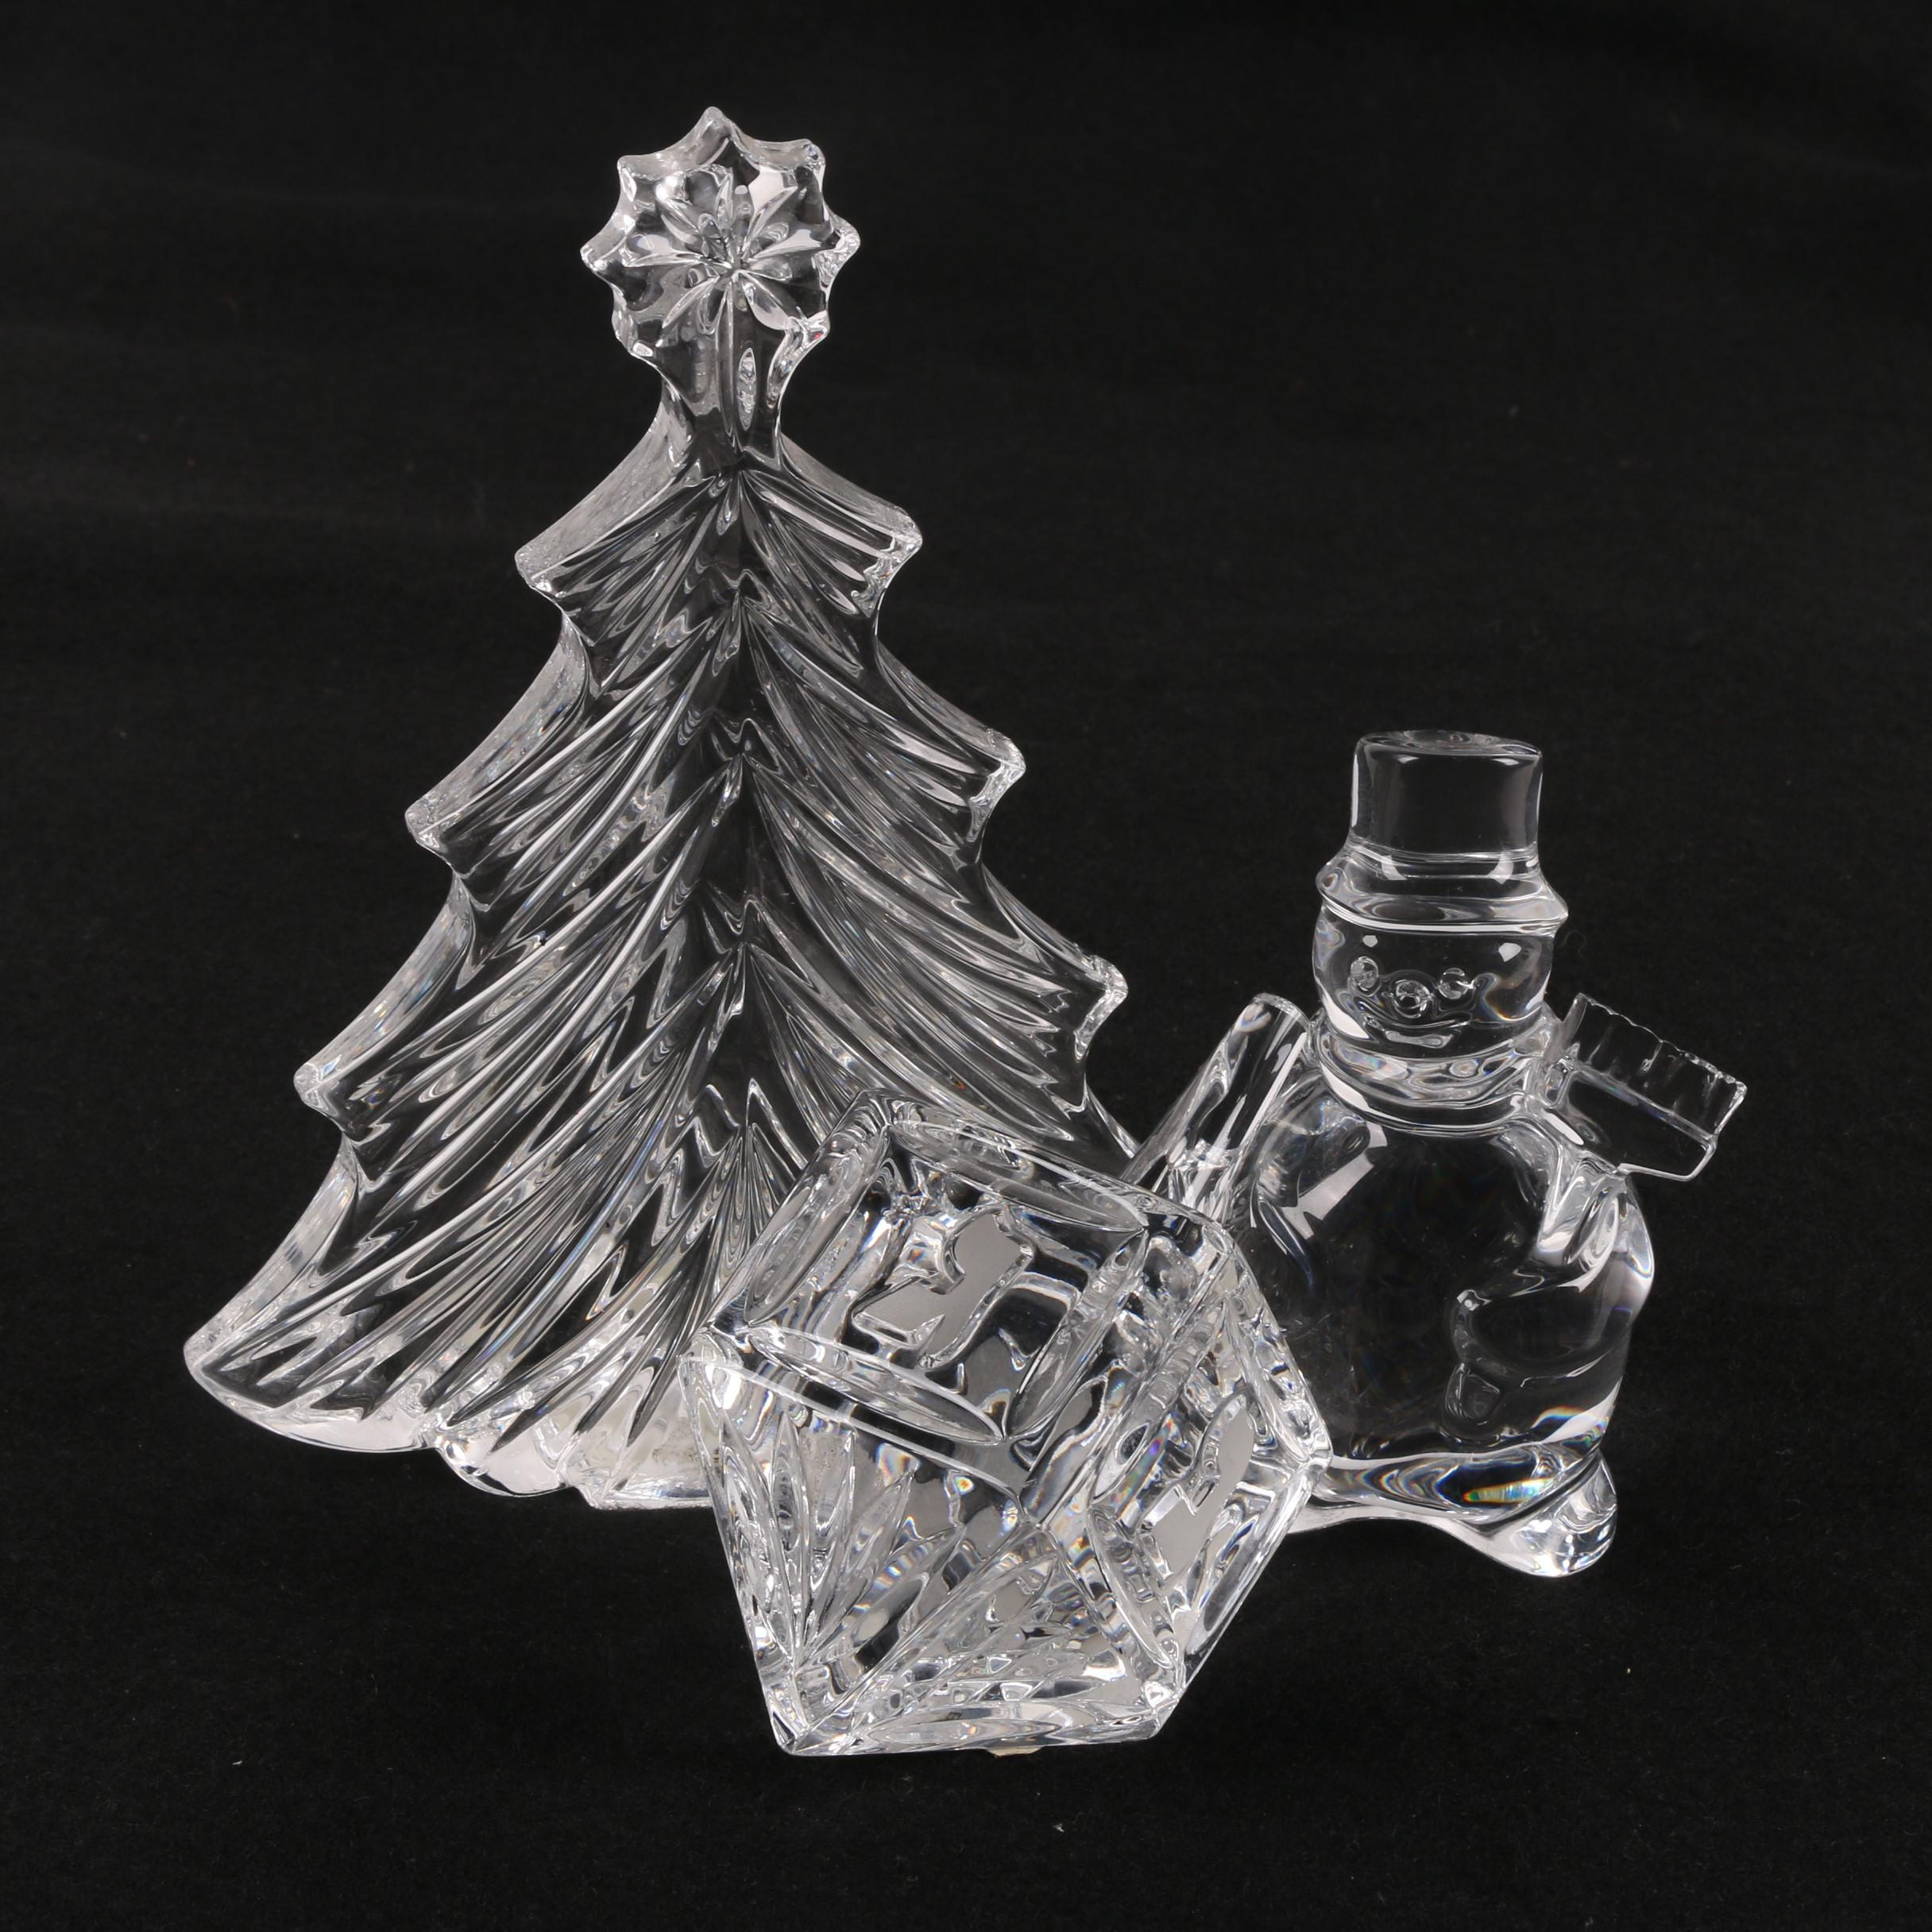 Waterford Crystal Dreidel and Christmas Tree with Baccarat Crystal Snowman